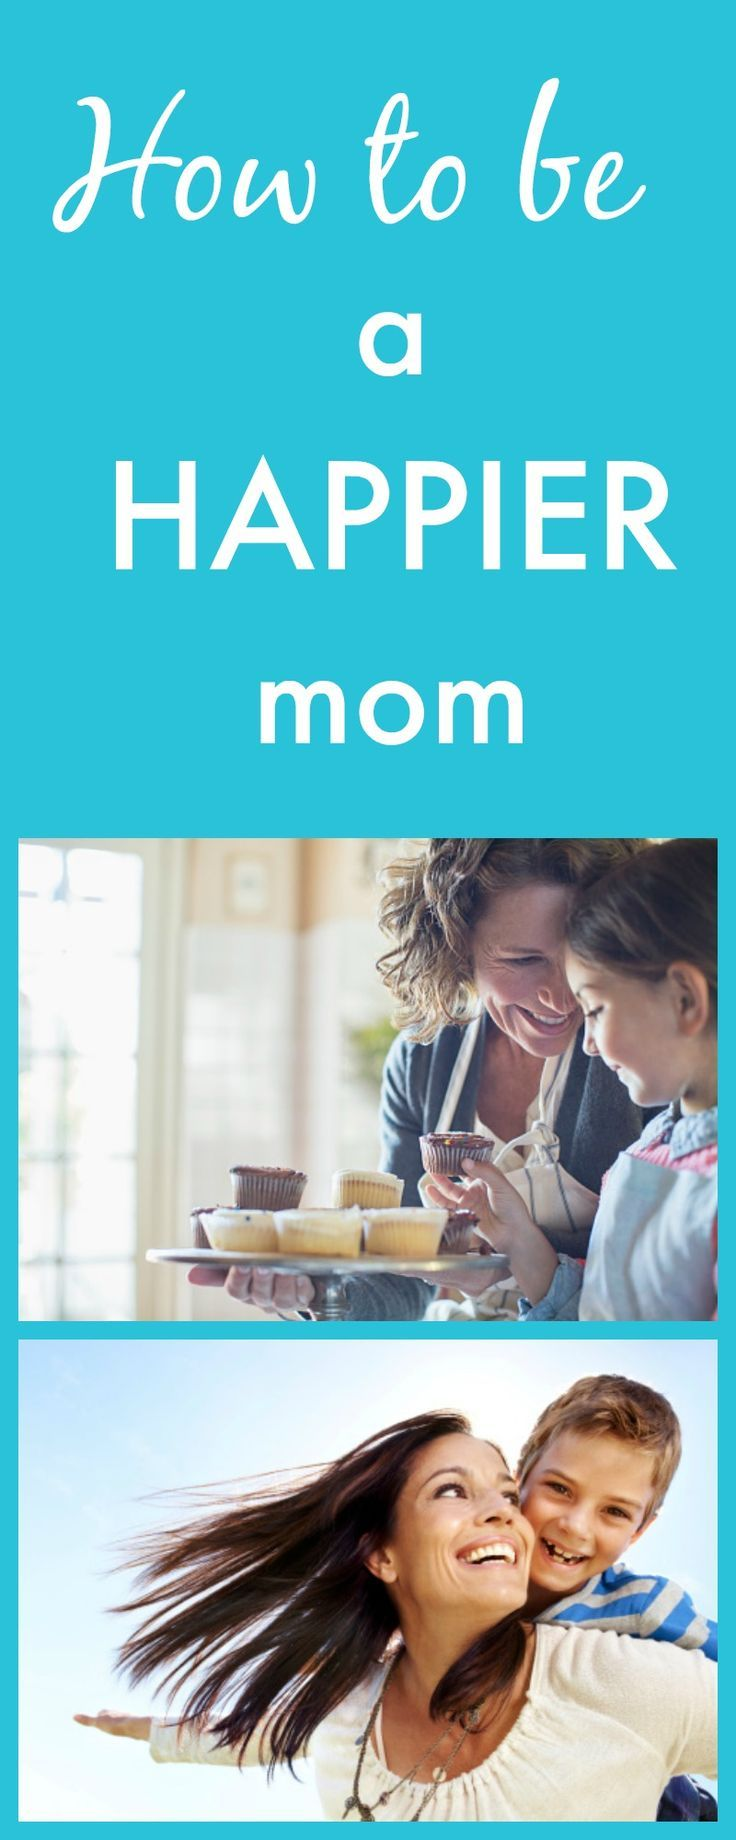 There's plenty written about how to be a less-stressed mom or a more organized mom...but how about being a HAPPIER mom? |parenting|motherhood|work at home mome|part time work|working mom|full time work|career mom|mom blogs|mom bloggers|parenting blogs|par